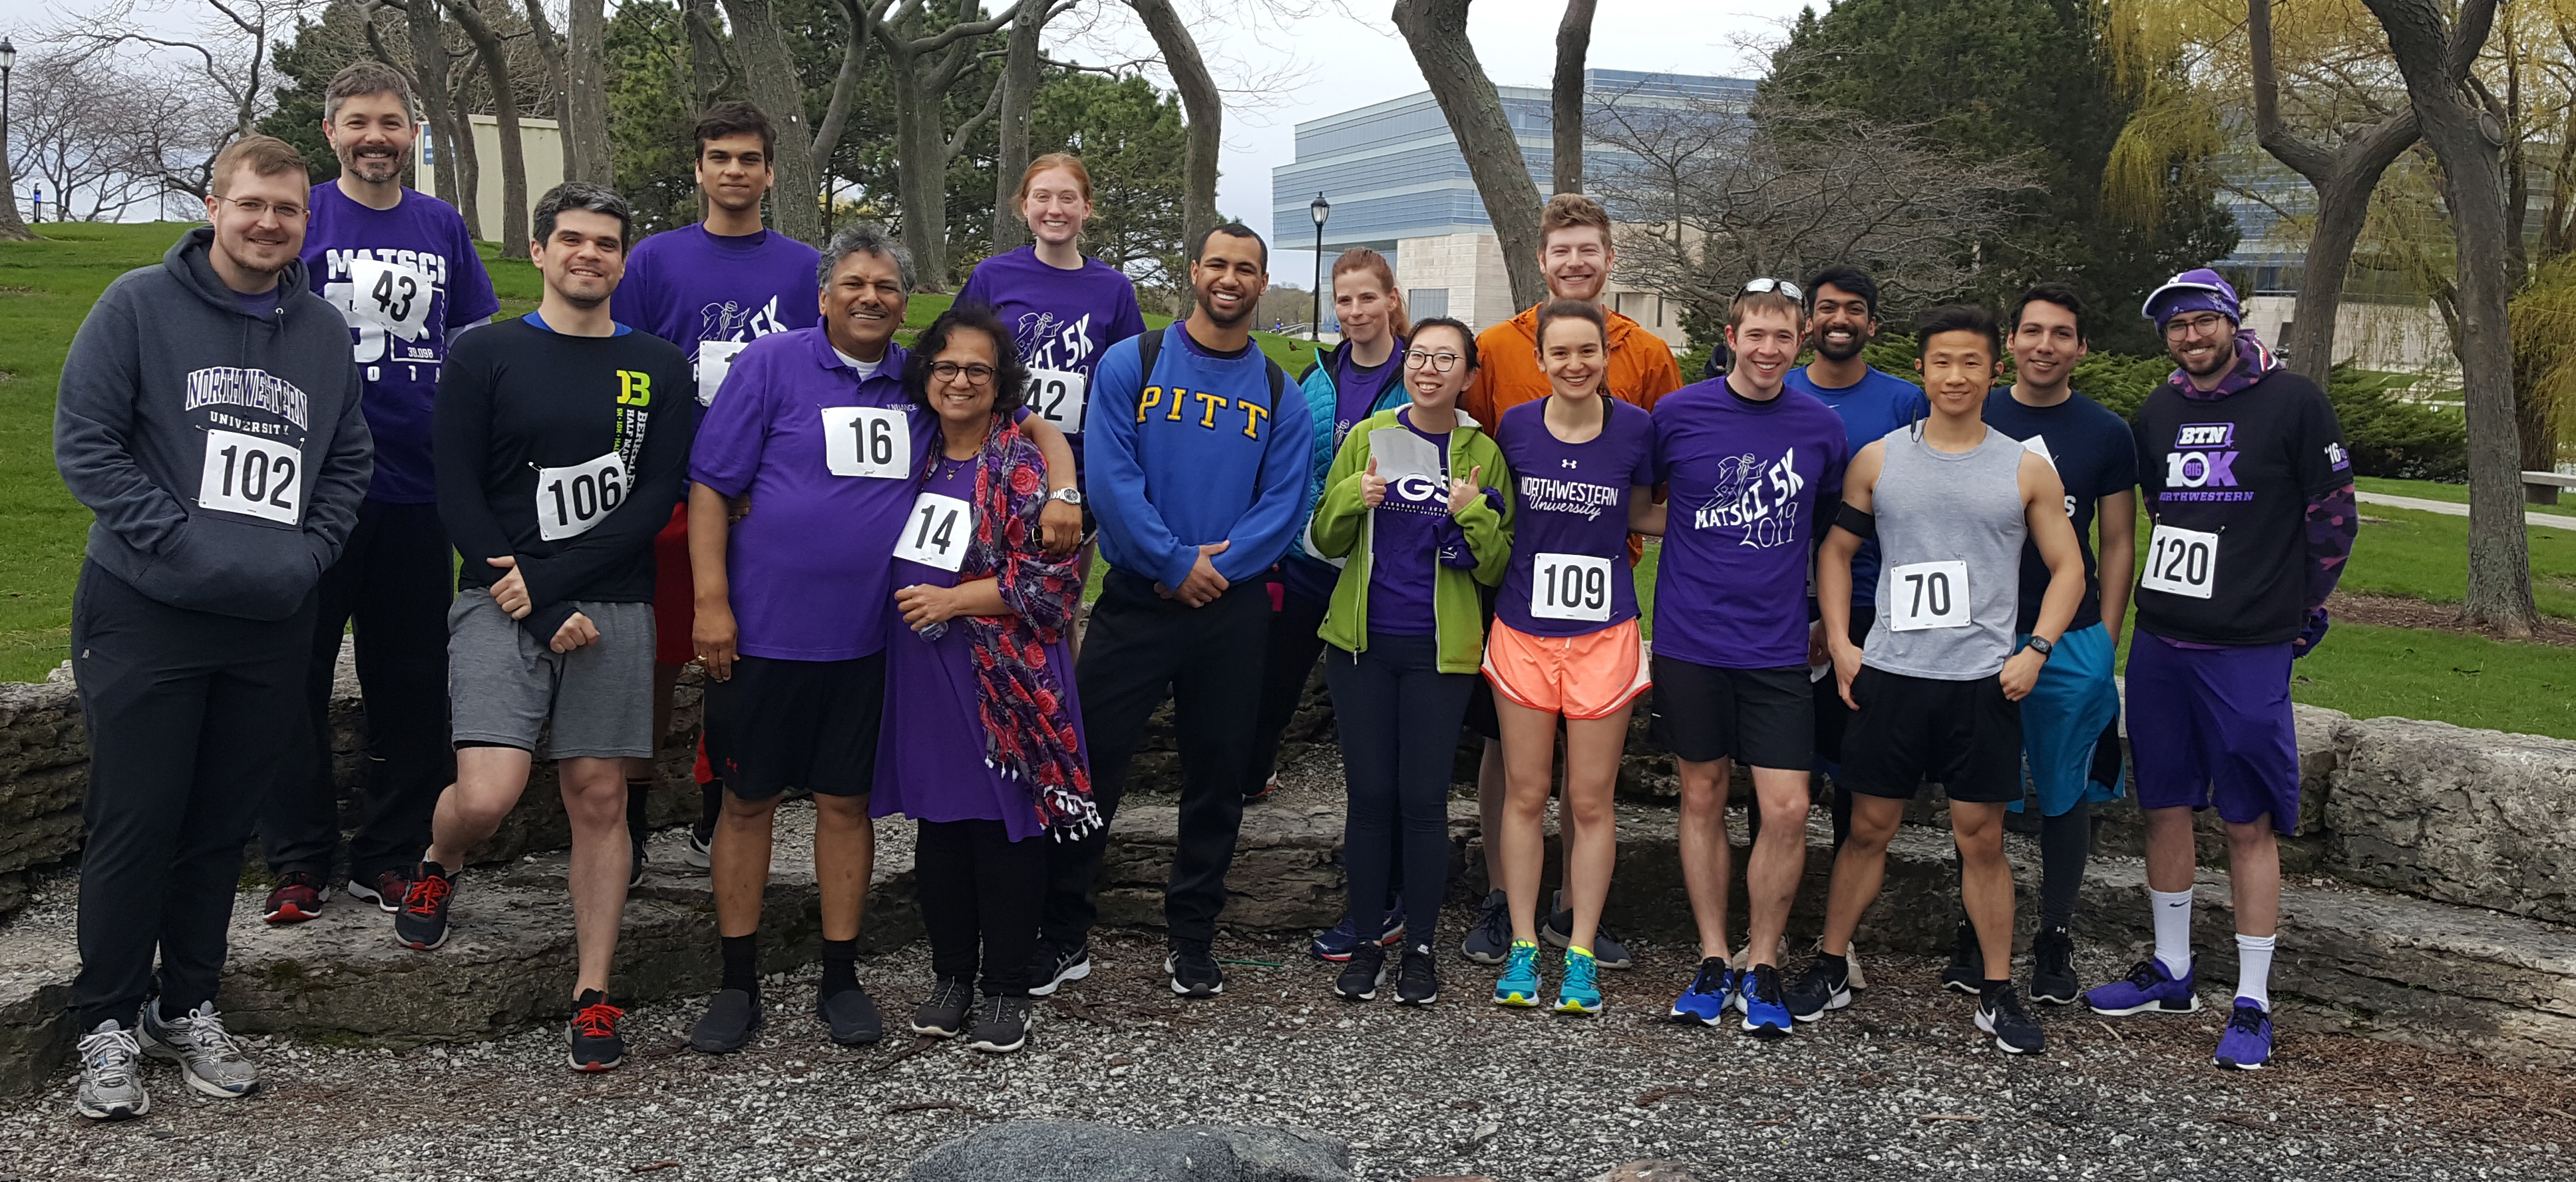 VPD Group and NUANCE staff at the MSSA 5K